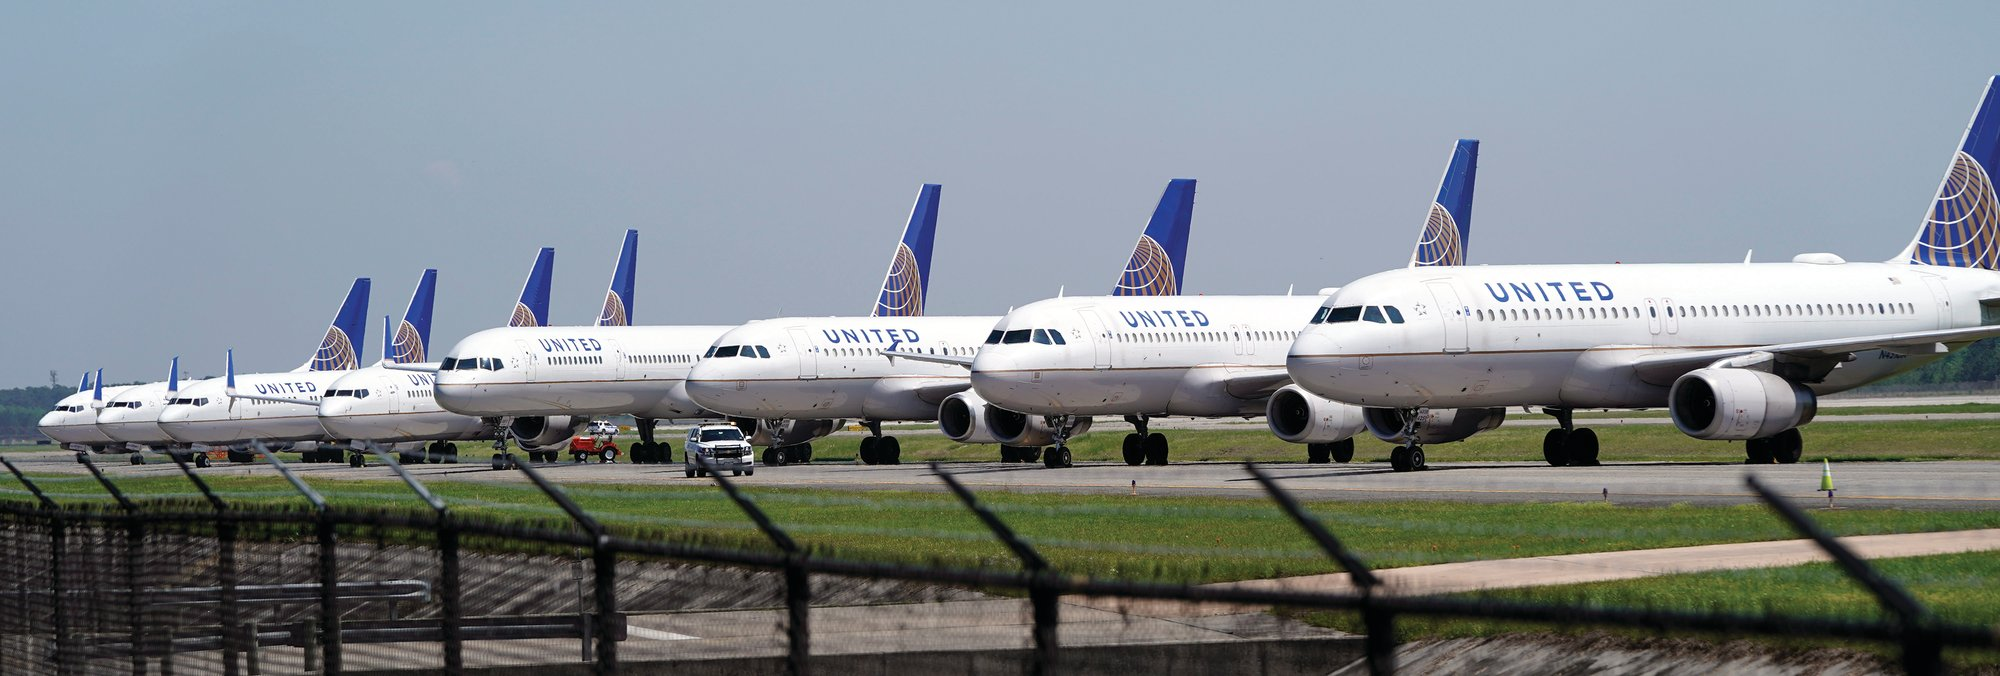 United Airlines planes are parked at George Bush Intercontinental Airport in Houston.